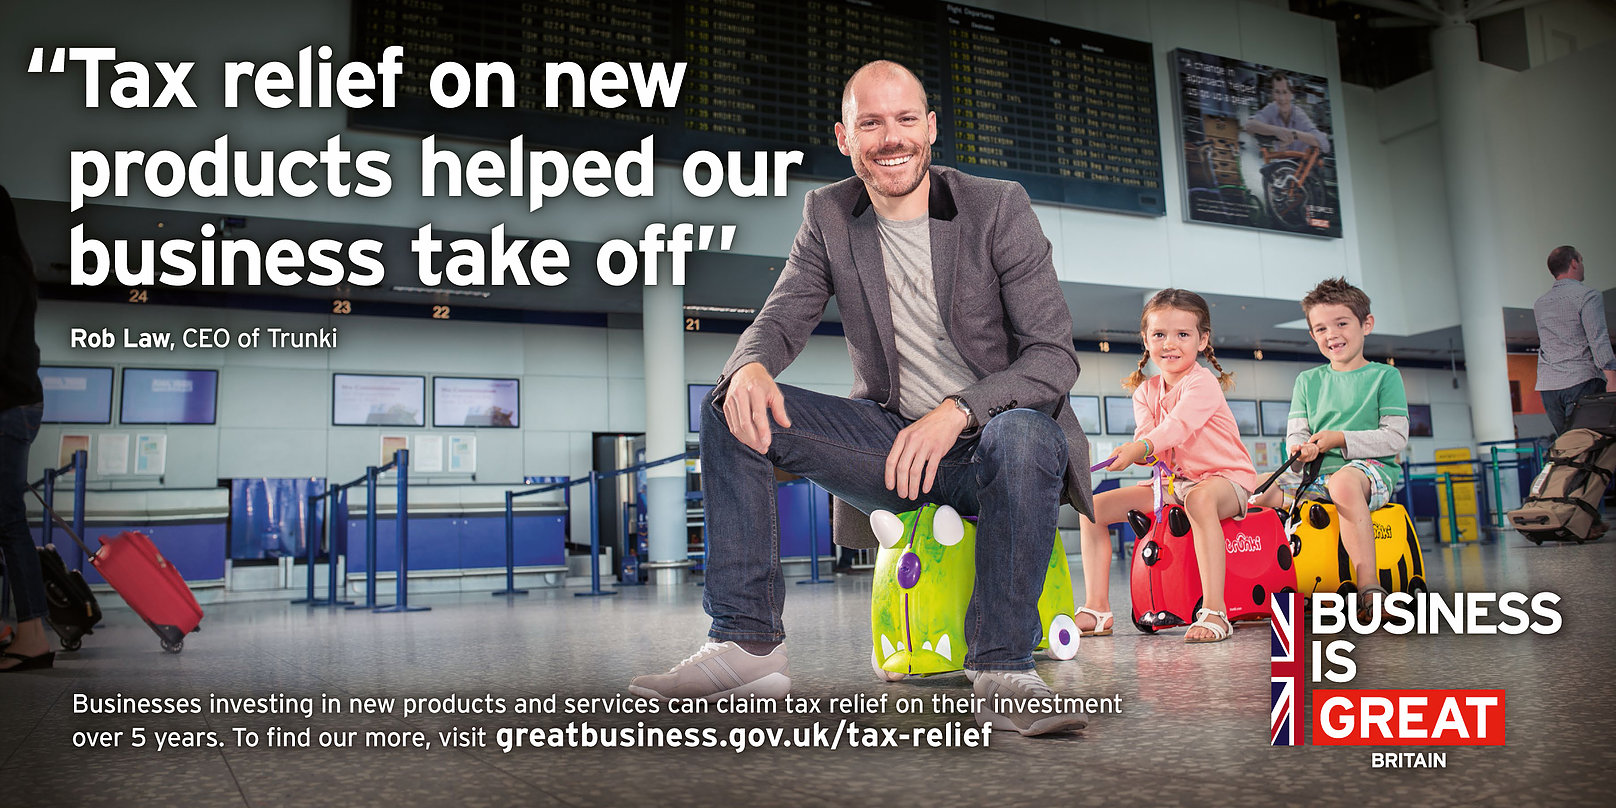 Rob headlined a topic on innovation and how tax relief for R&D helped him expand Trunki with full sized billboards like this one